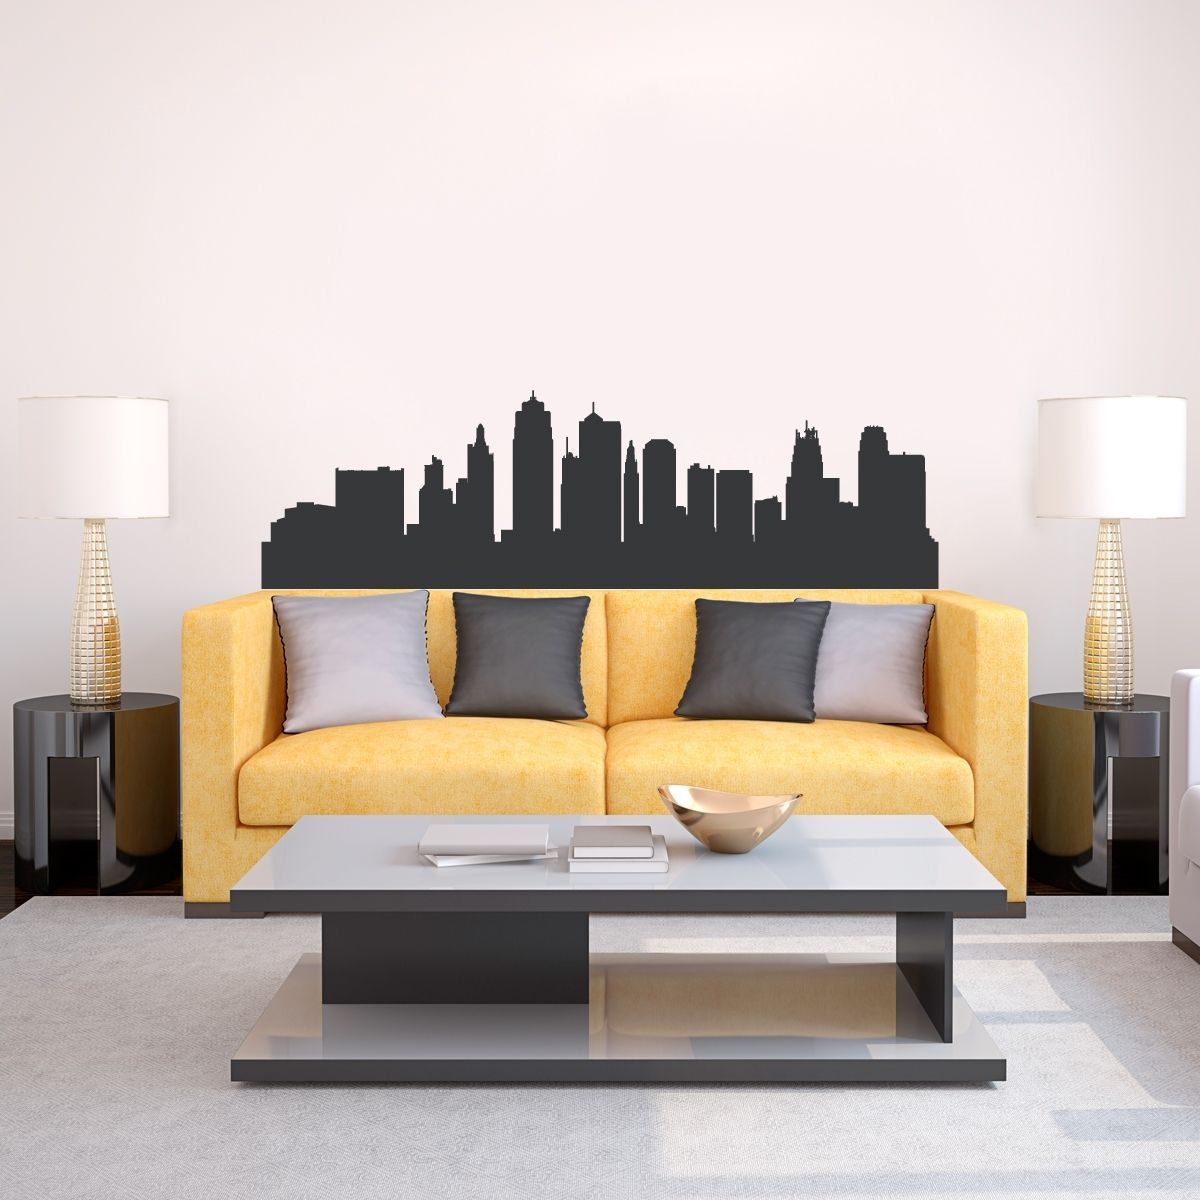 Kansas City Missouri Skyline Vinyl Wall Decal Sticker Throughout Latest Kansas City Wall Art (View 12 of 20)